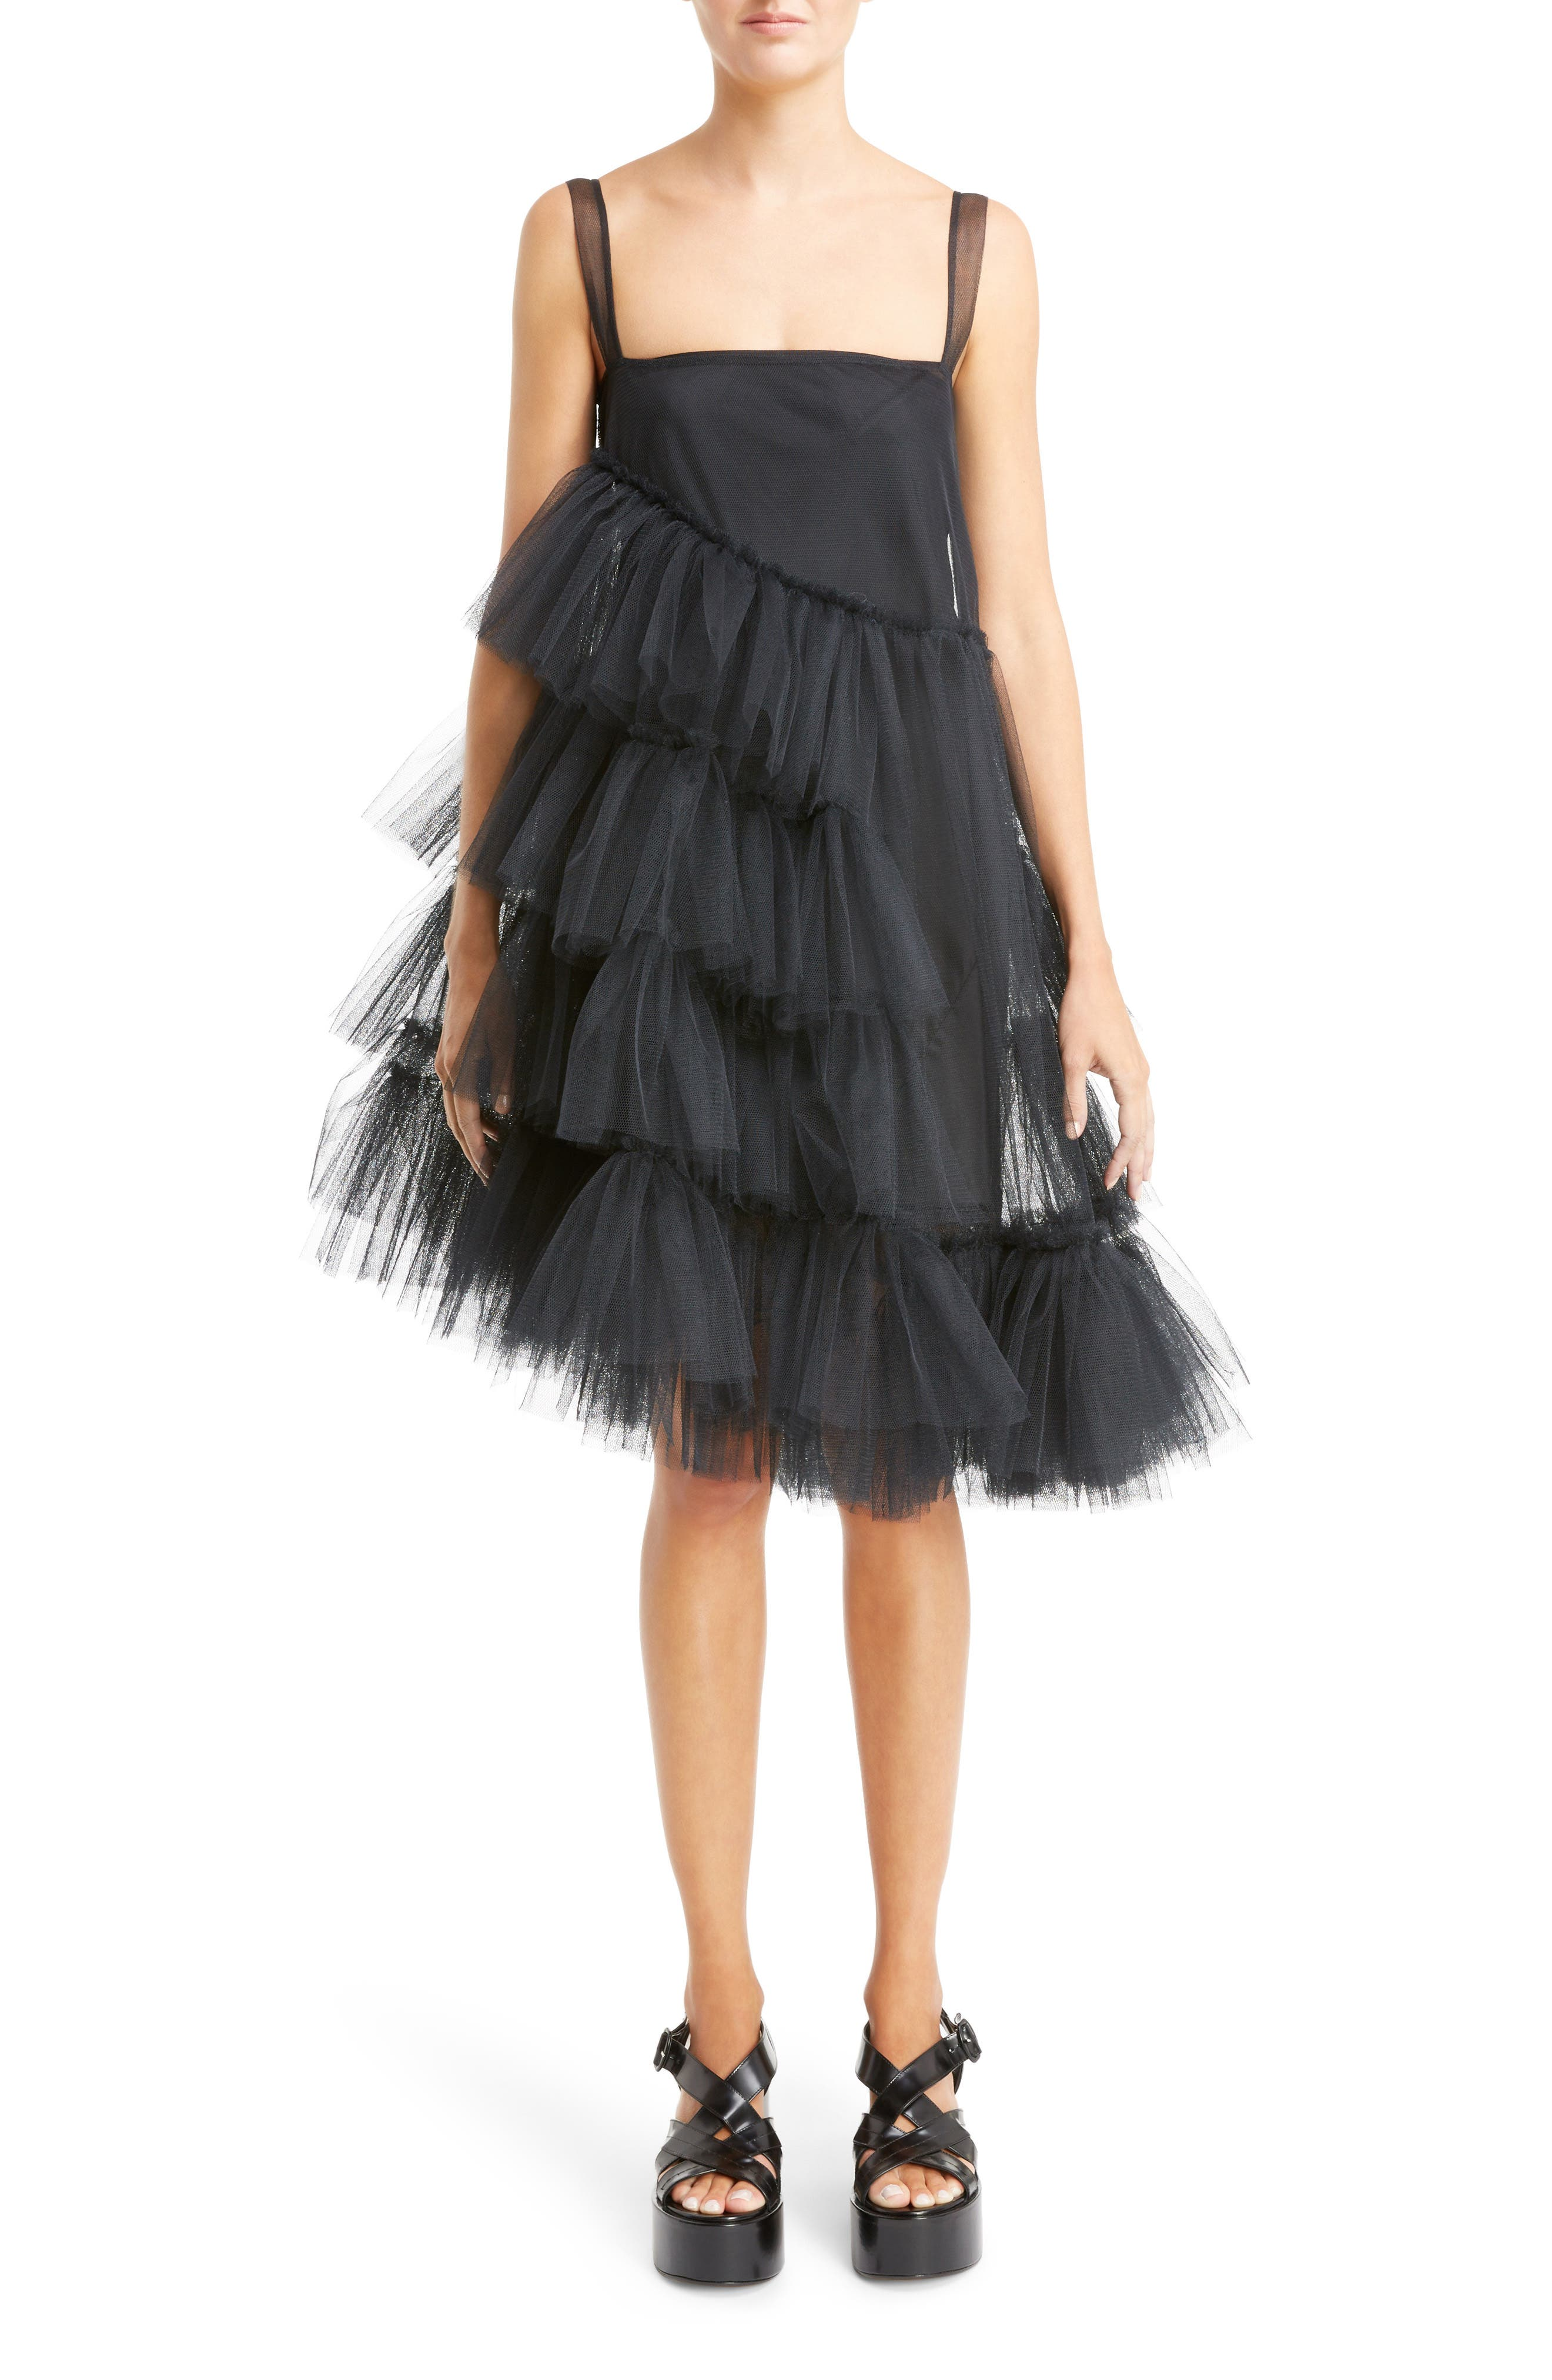 Turbo Tiered Tulle Dress,                             Main thumbnail 1, color,                             001